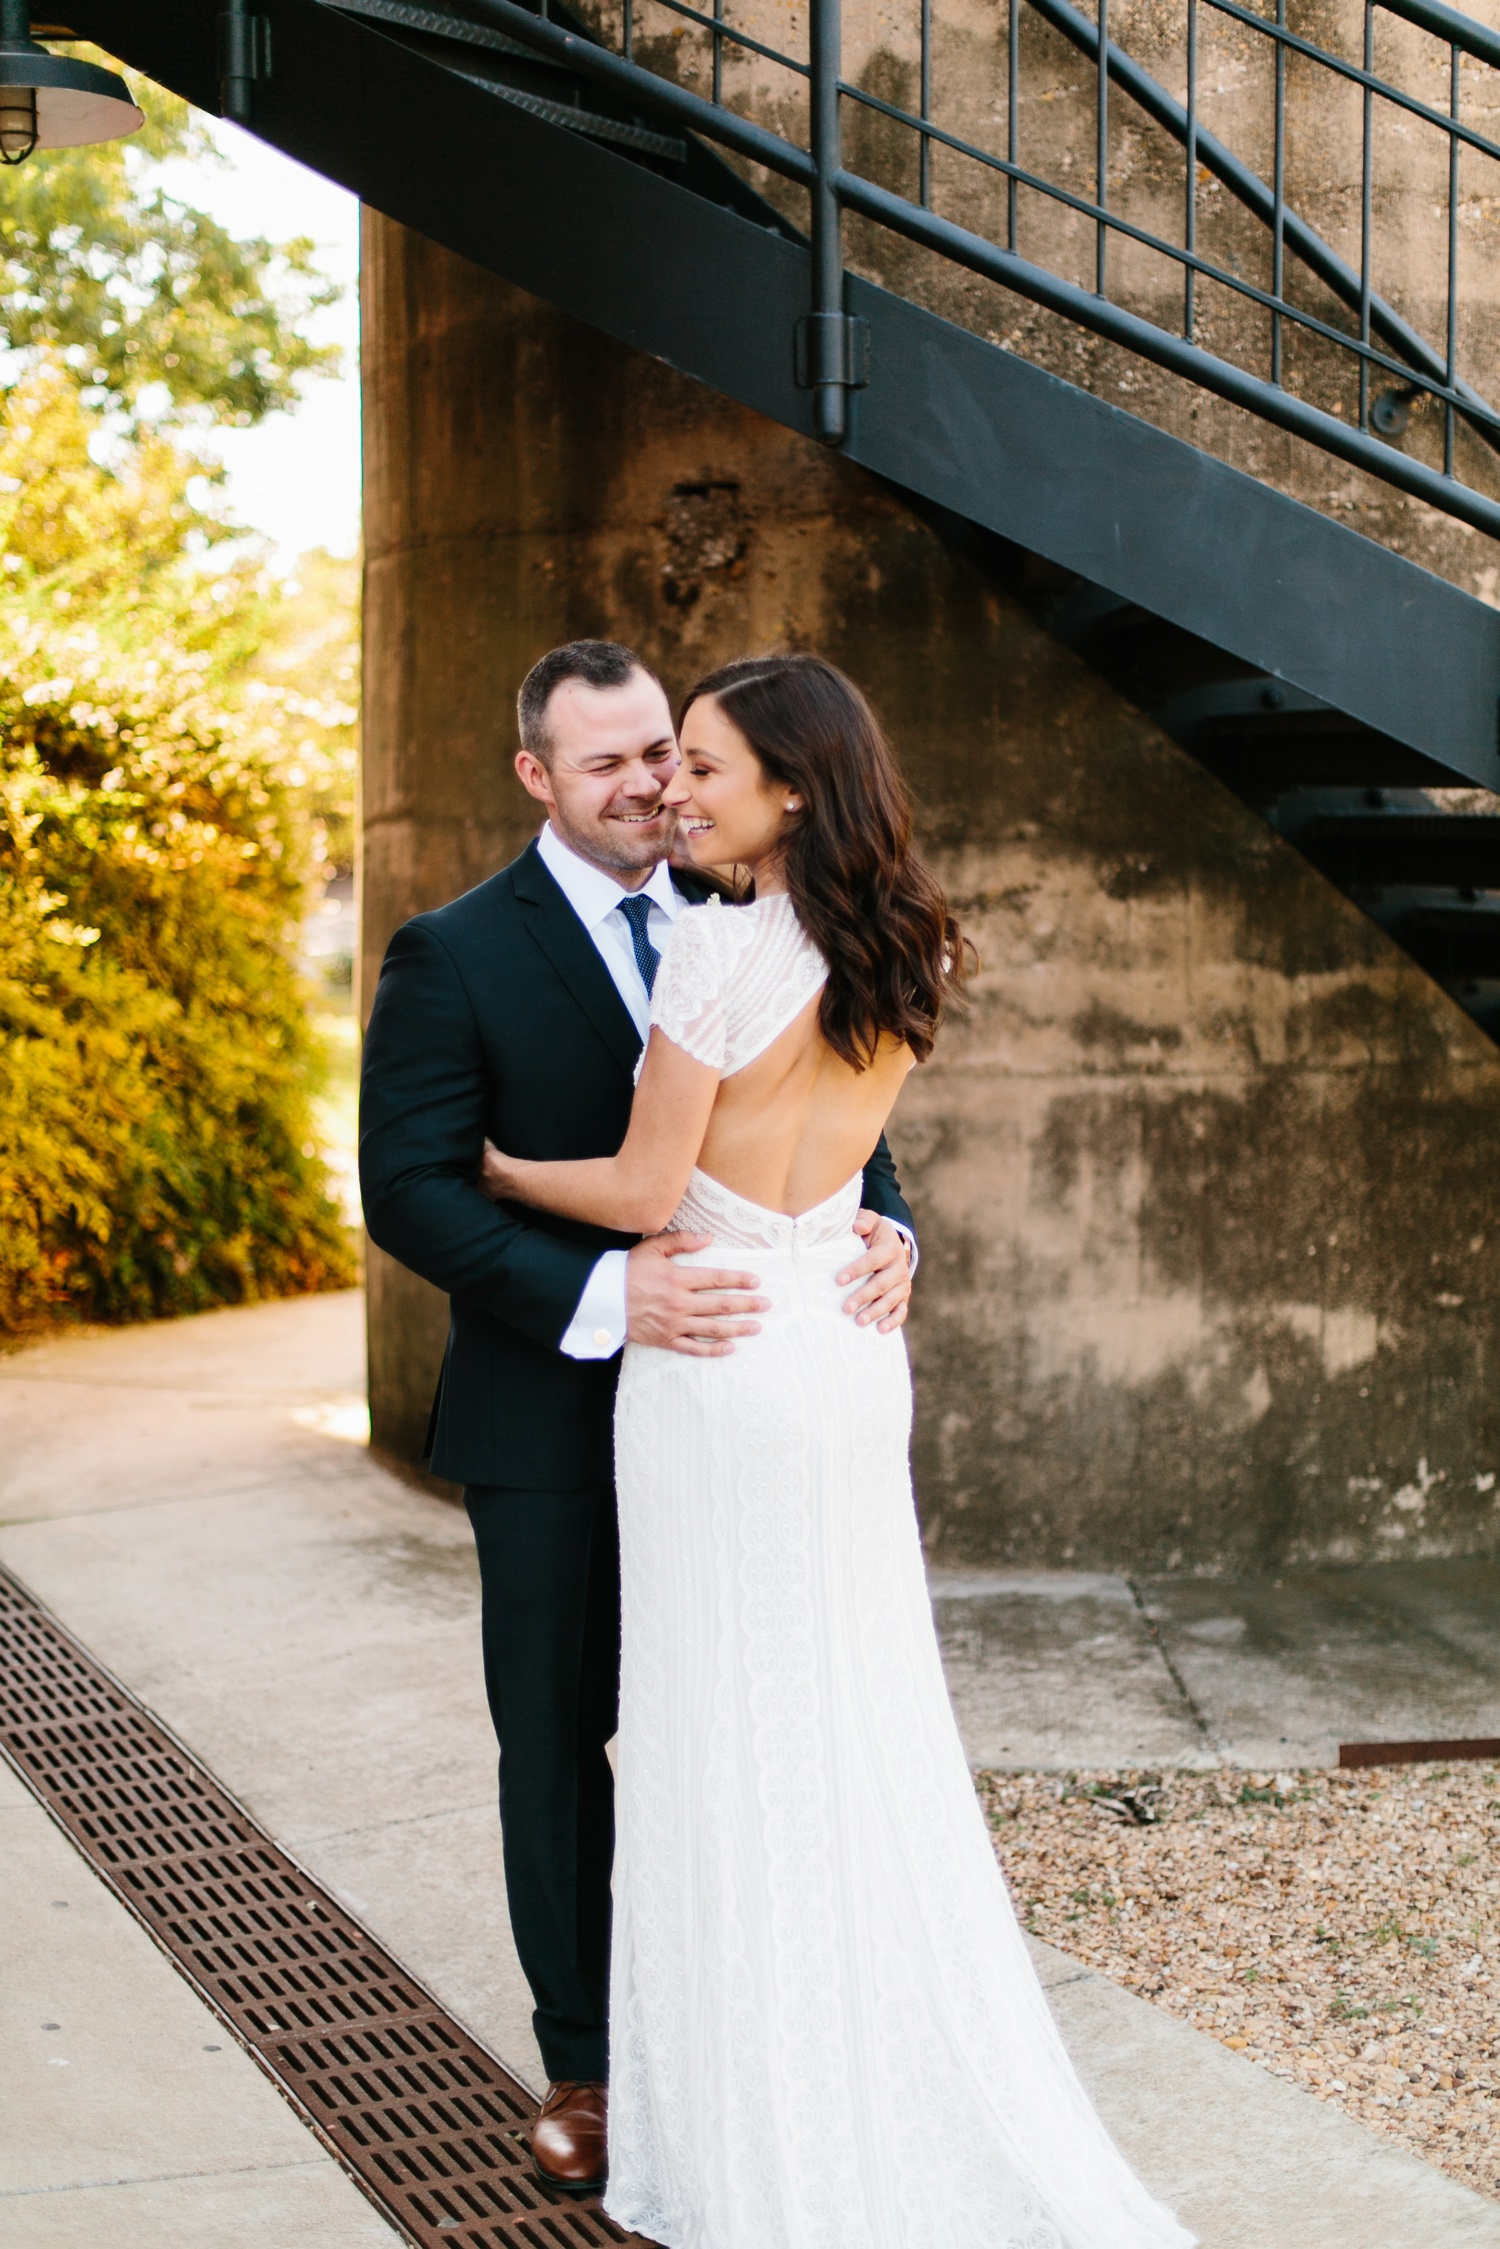 Kadee + Tyler | a raw, emotional wedding at the Filter Building on White Rock Lake in Dallas, TX by North Texas Wedding Photographer, Rachel Meagan Photography 085